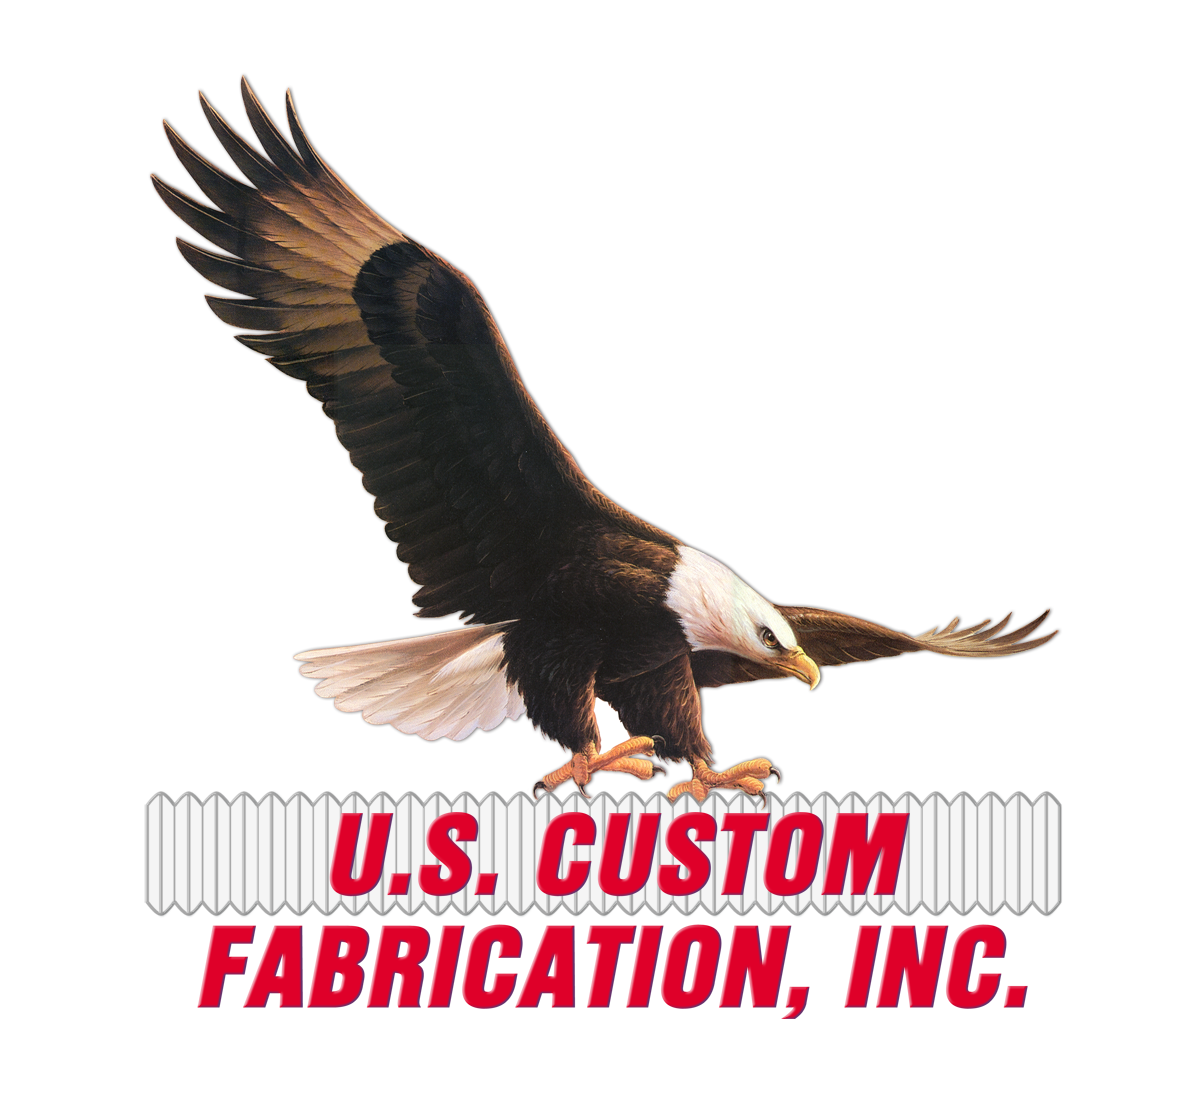 U. S. CUSTOM FABRICATION, INC.